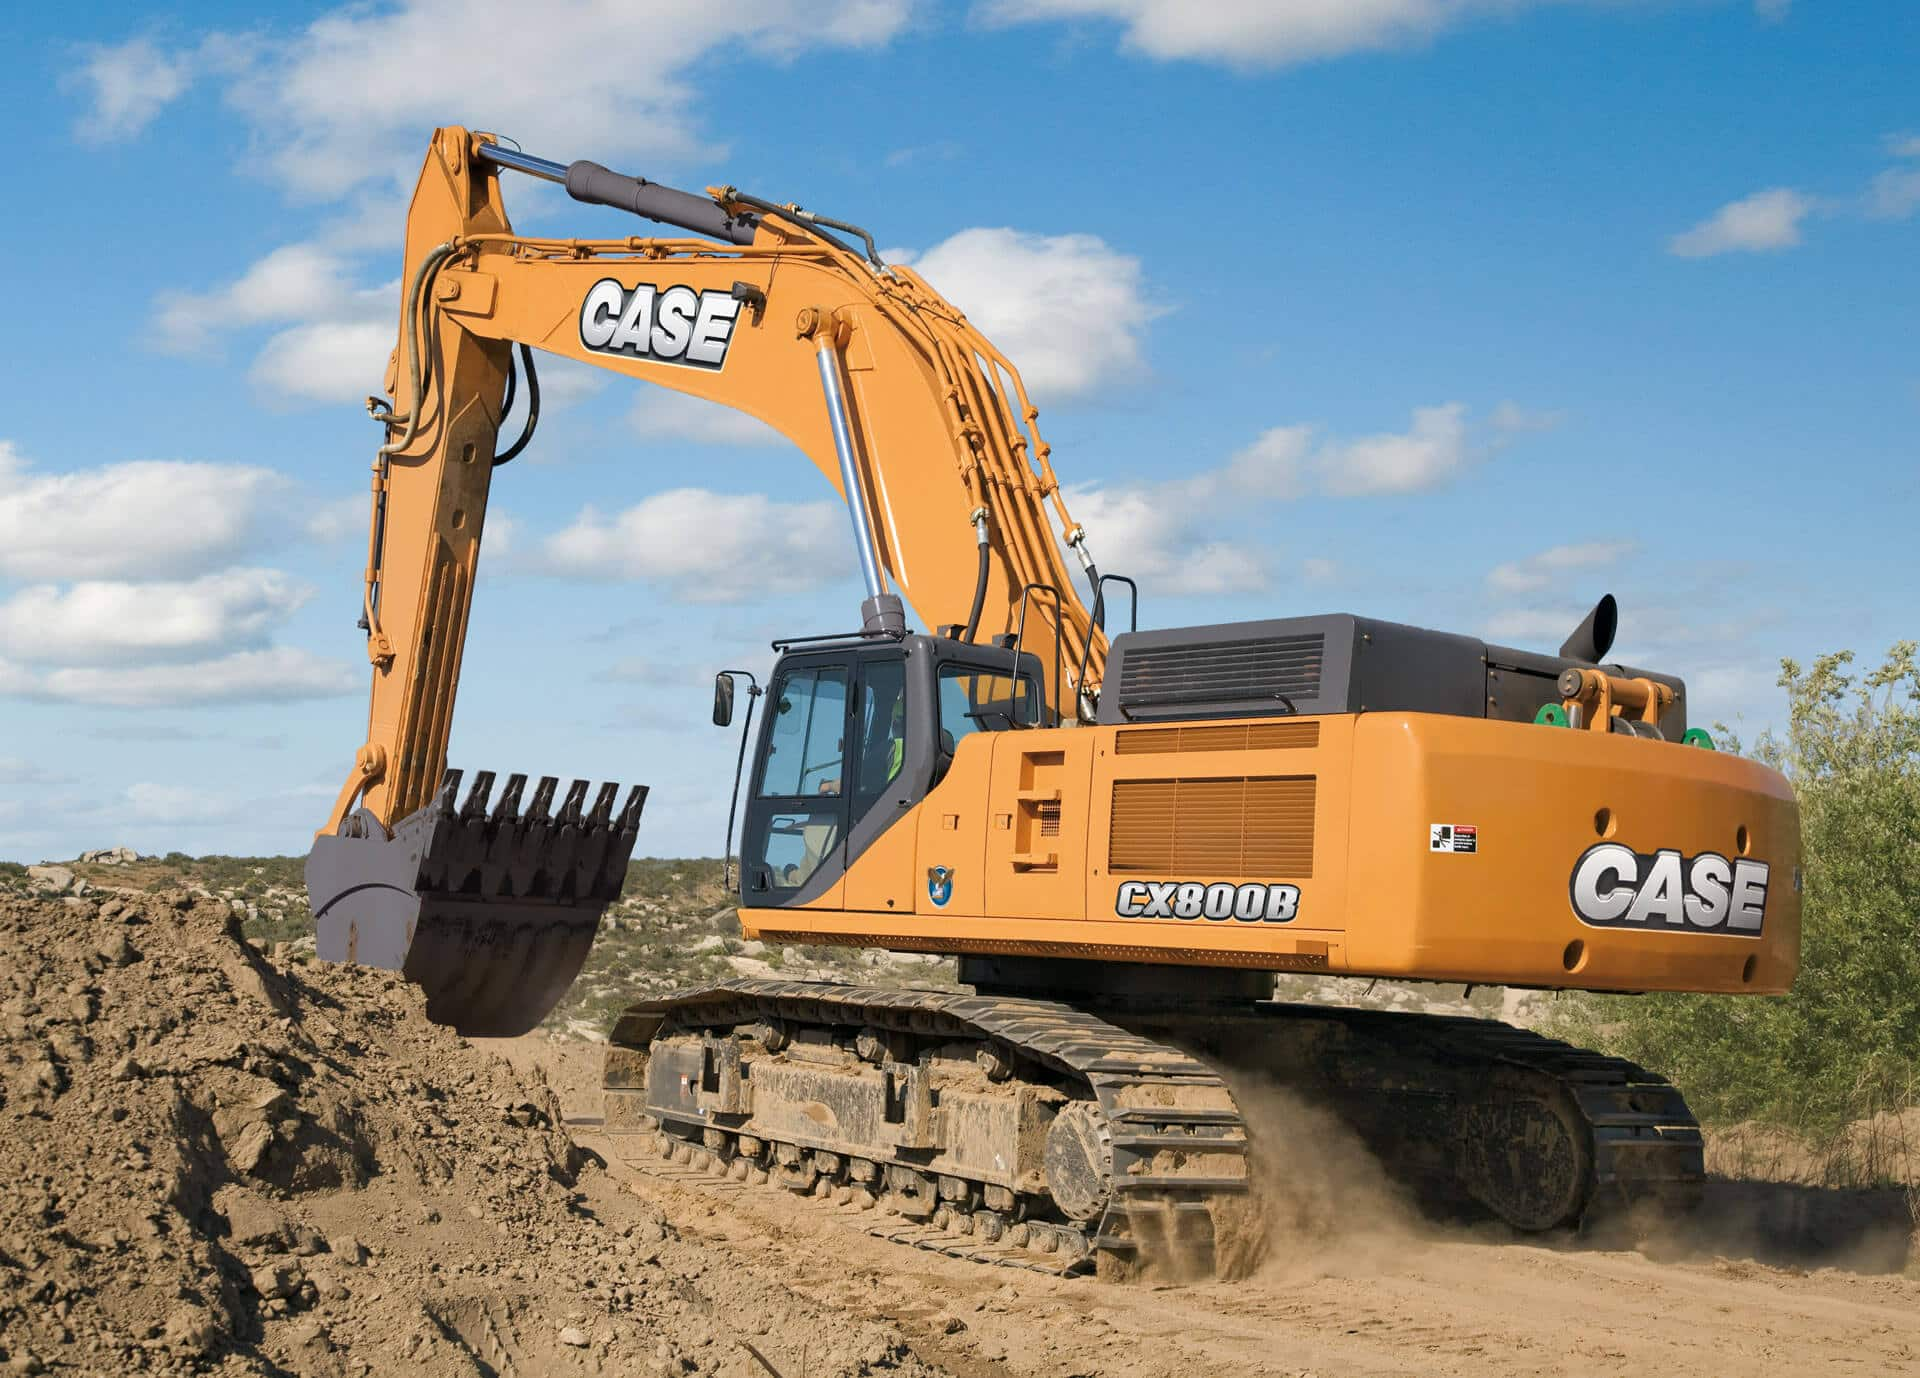 https://assets.cnhindustrial.com/casece/nafta/assets/Products/Excavators/Full-Size-Excavators/CX800B-00101.jpg?Width=800&Height=450